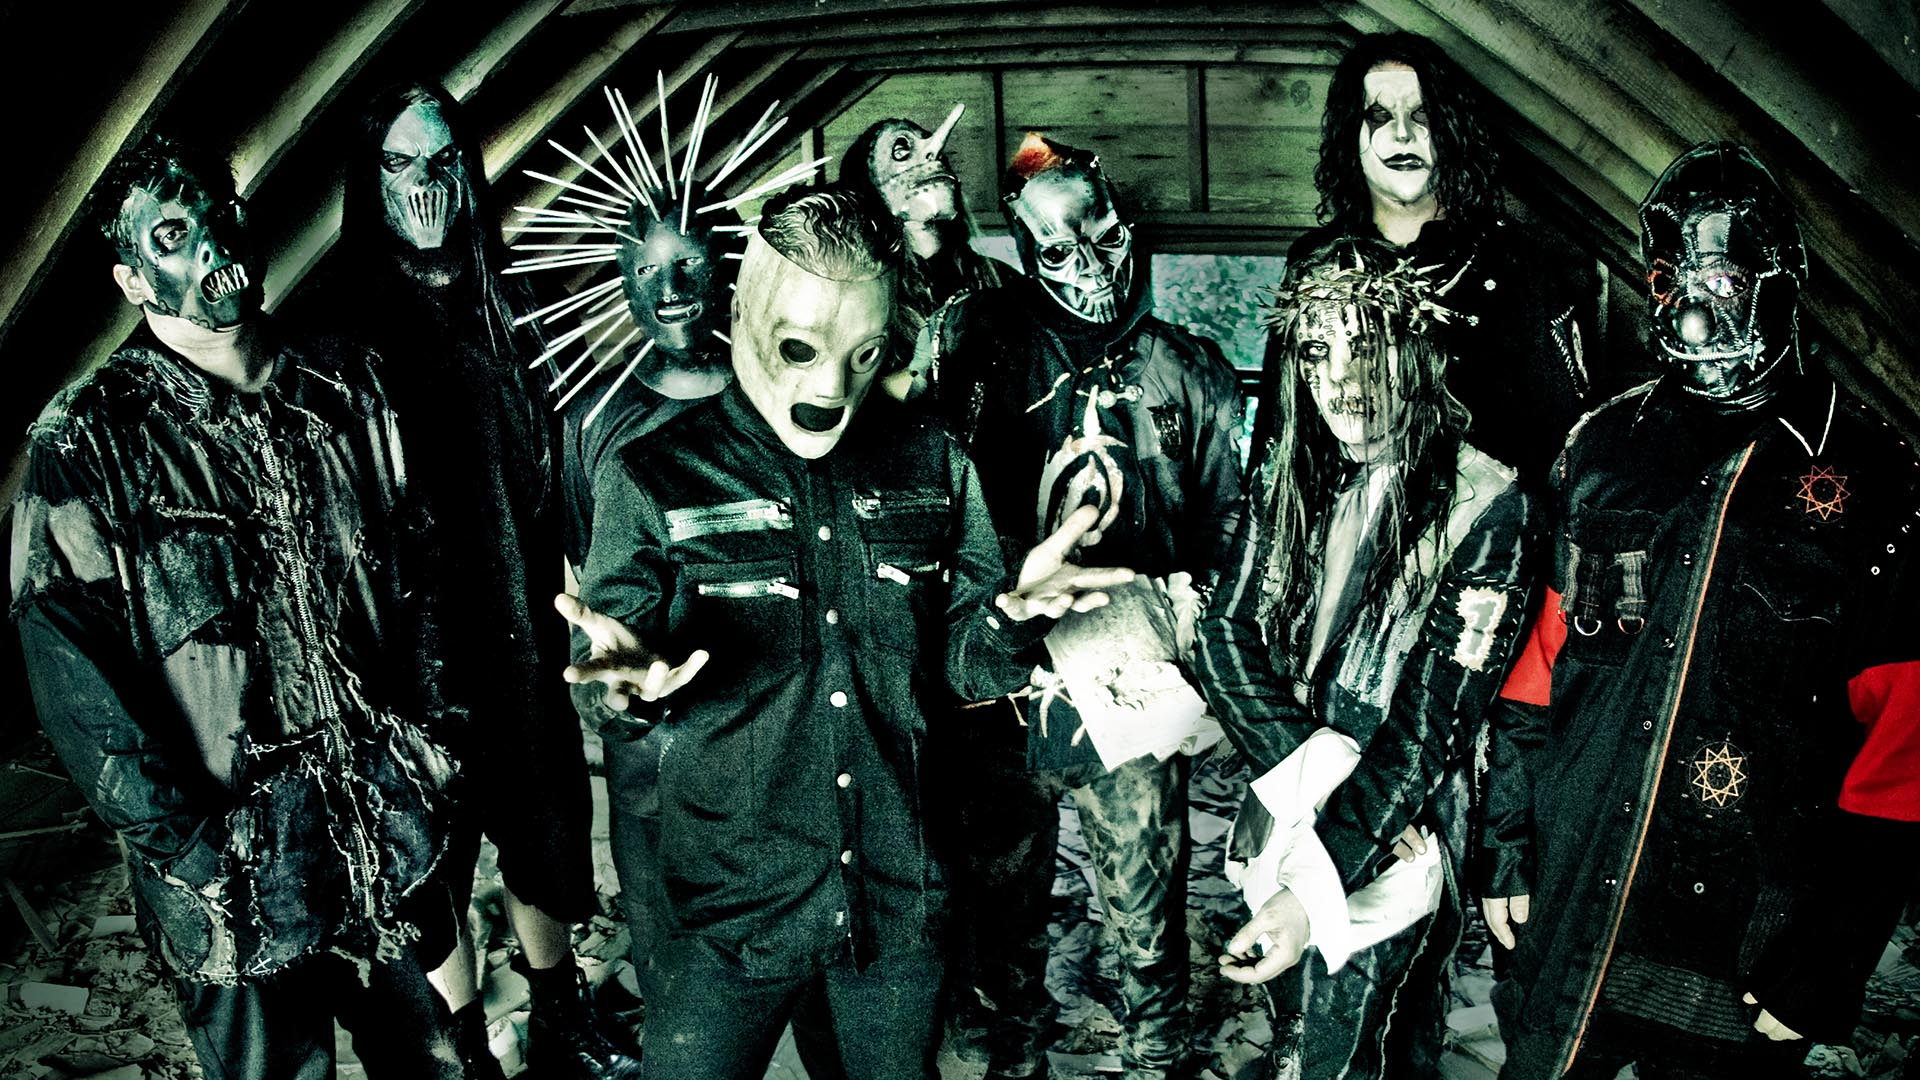 Amazing Slipknot Pictures & Backgrounds